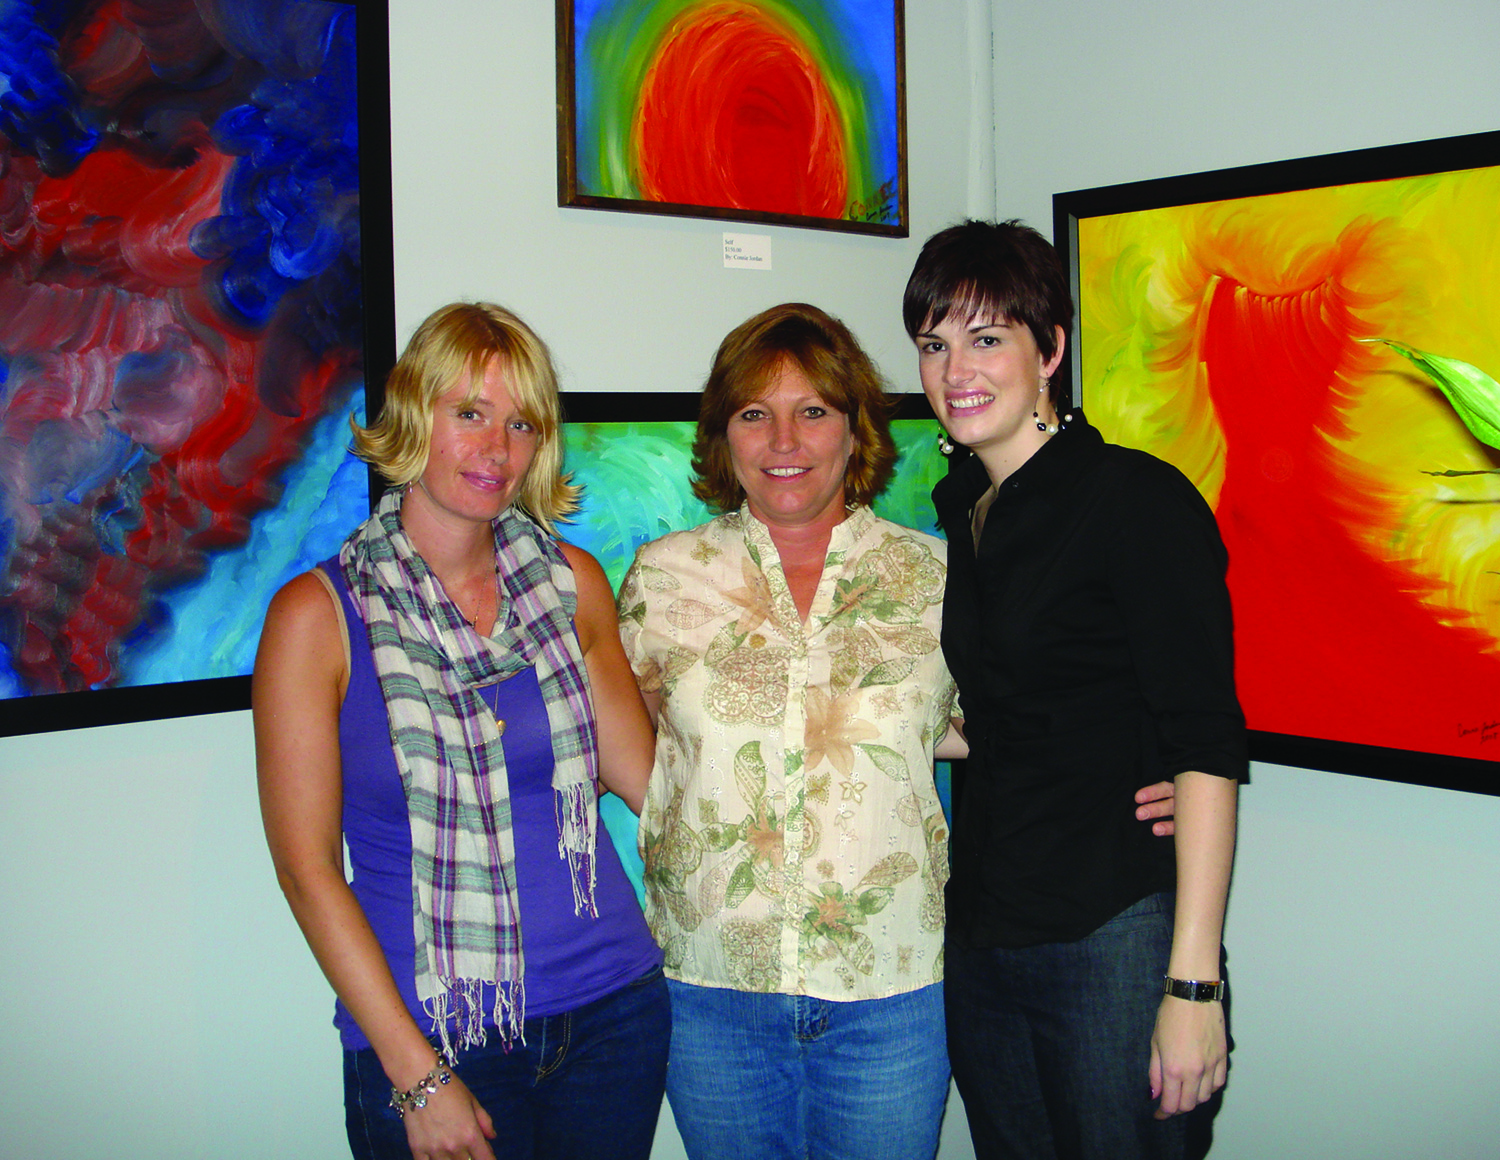 DENISE BUISMAN-PILGER FROM HOLLAND AND TANJA DUGAS (RIGHT) FROM GERMANY, along with gallery owner Connie Jordan, bring a diverse display of artistic creation at the Jordan Art Gallery on Beaton Street.